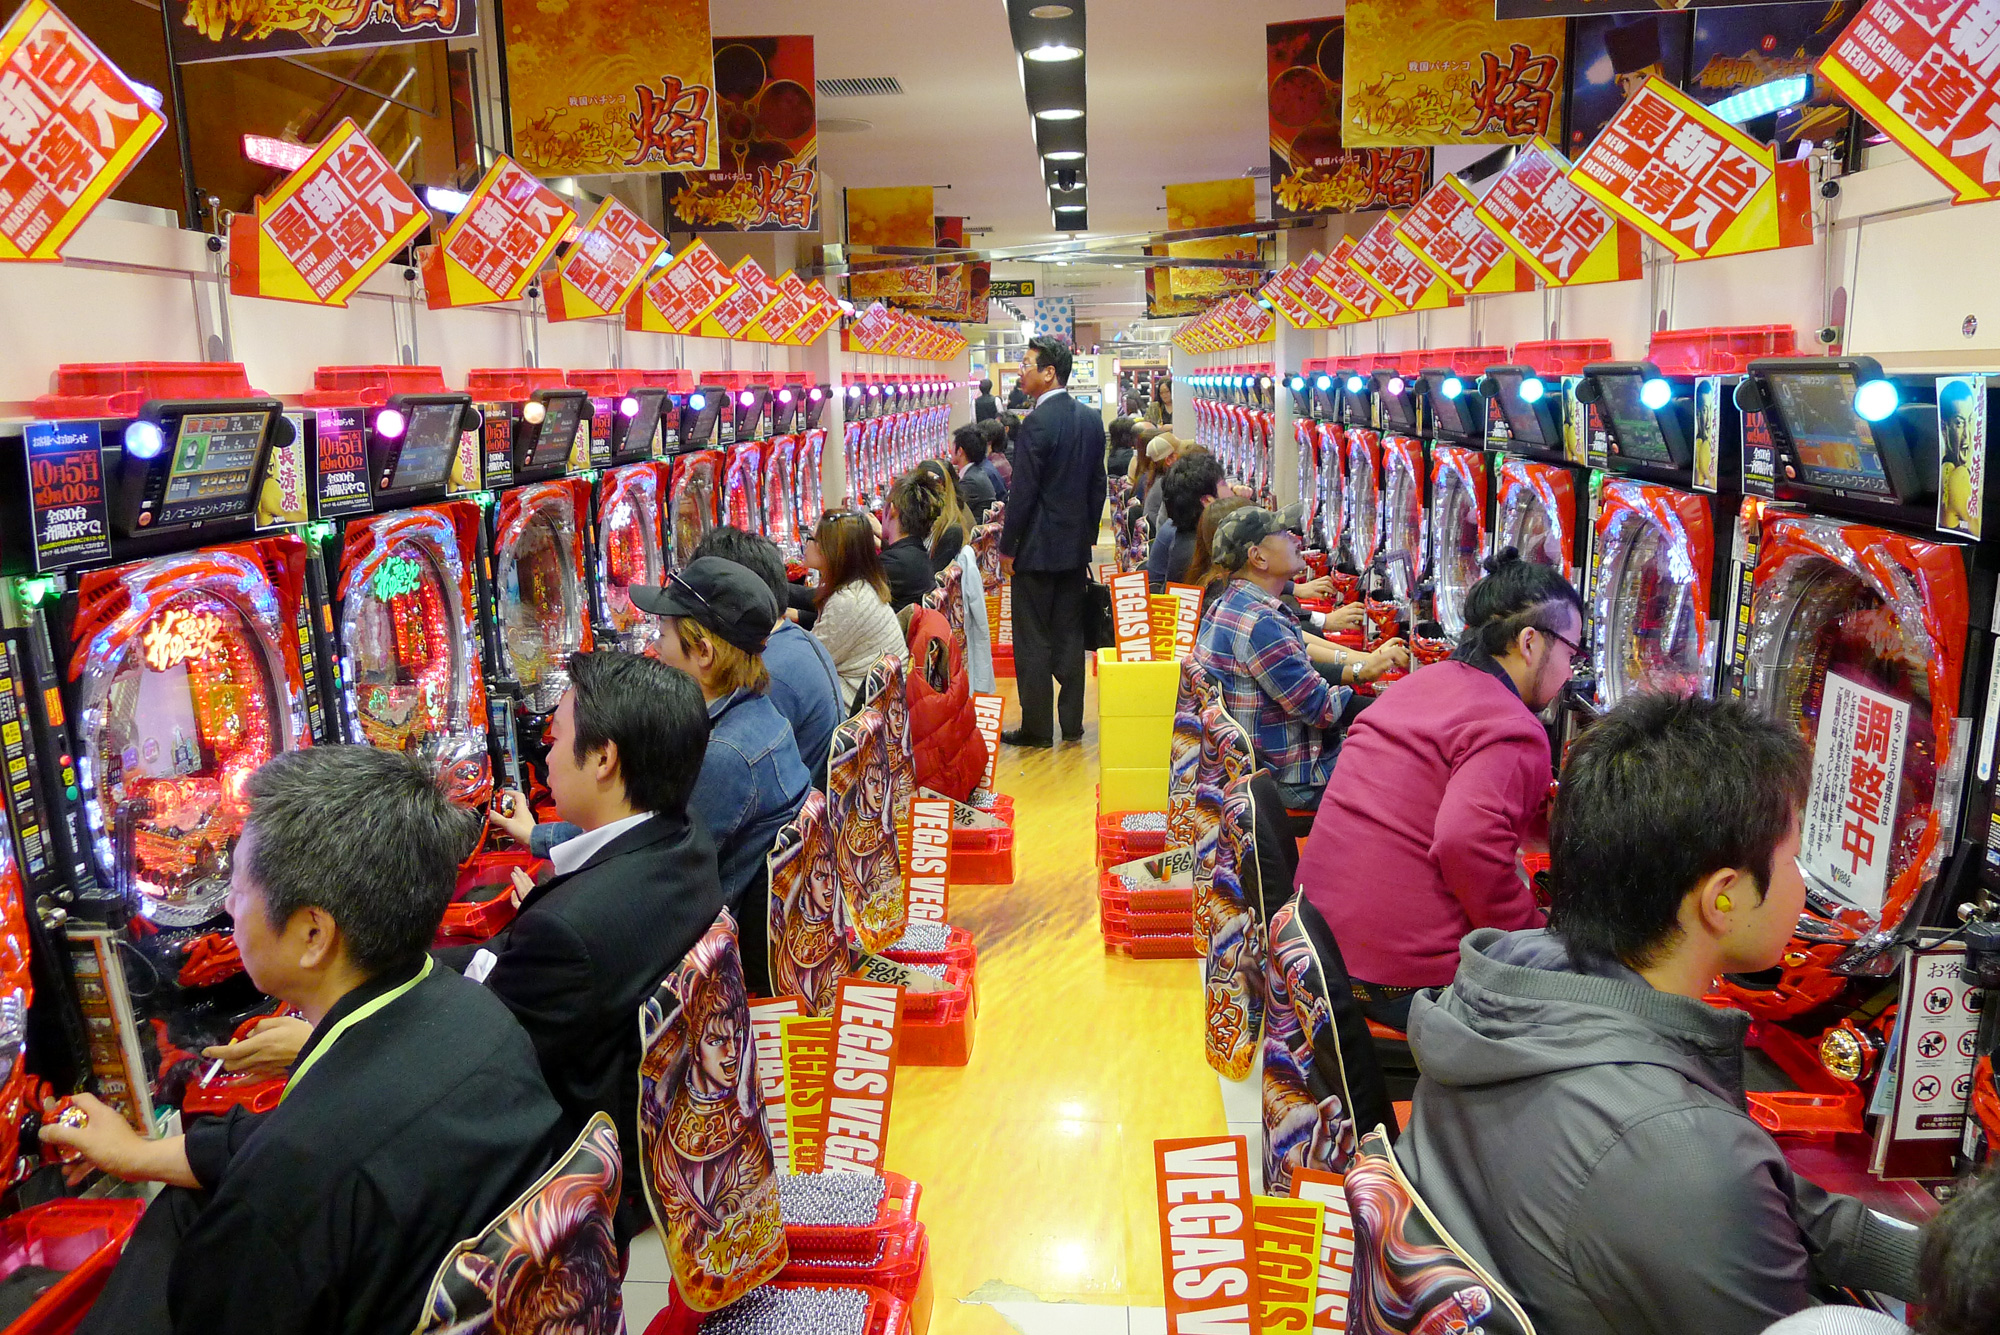 Pachinko parlour in Sendai, Japan. Photo by Karl Andersson.